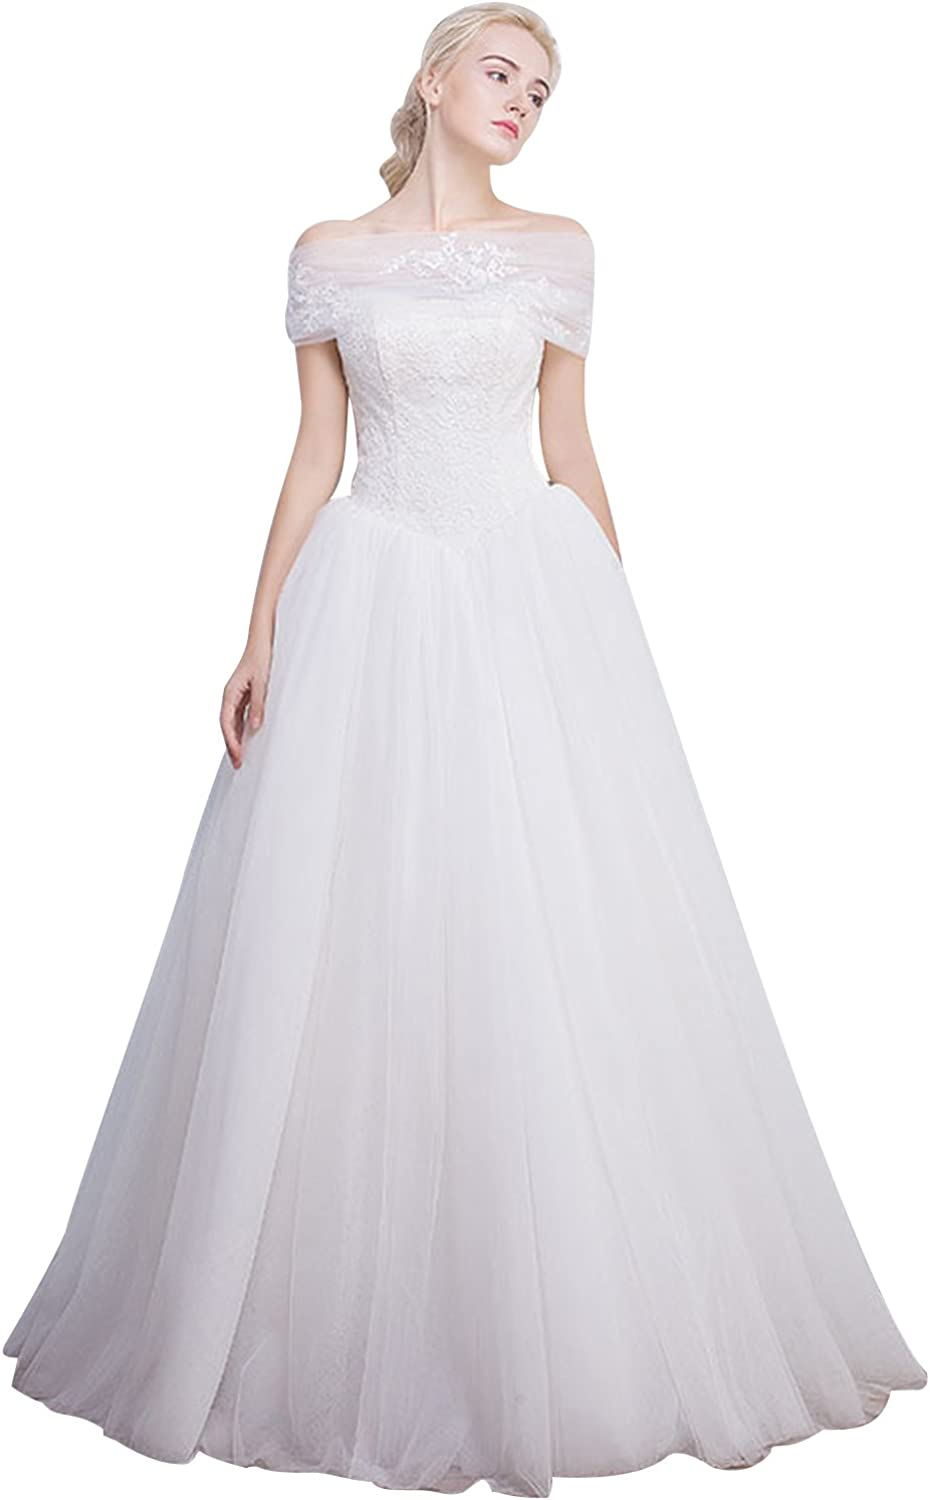 Fanciest Women's Tulle Ball Gown Wedding Dresses Lace Bridal Gowns White